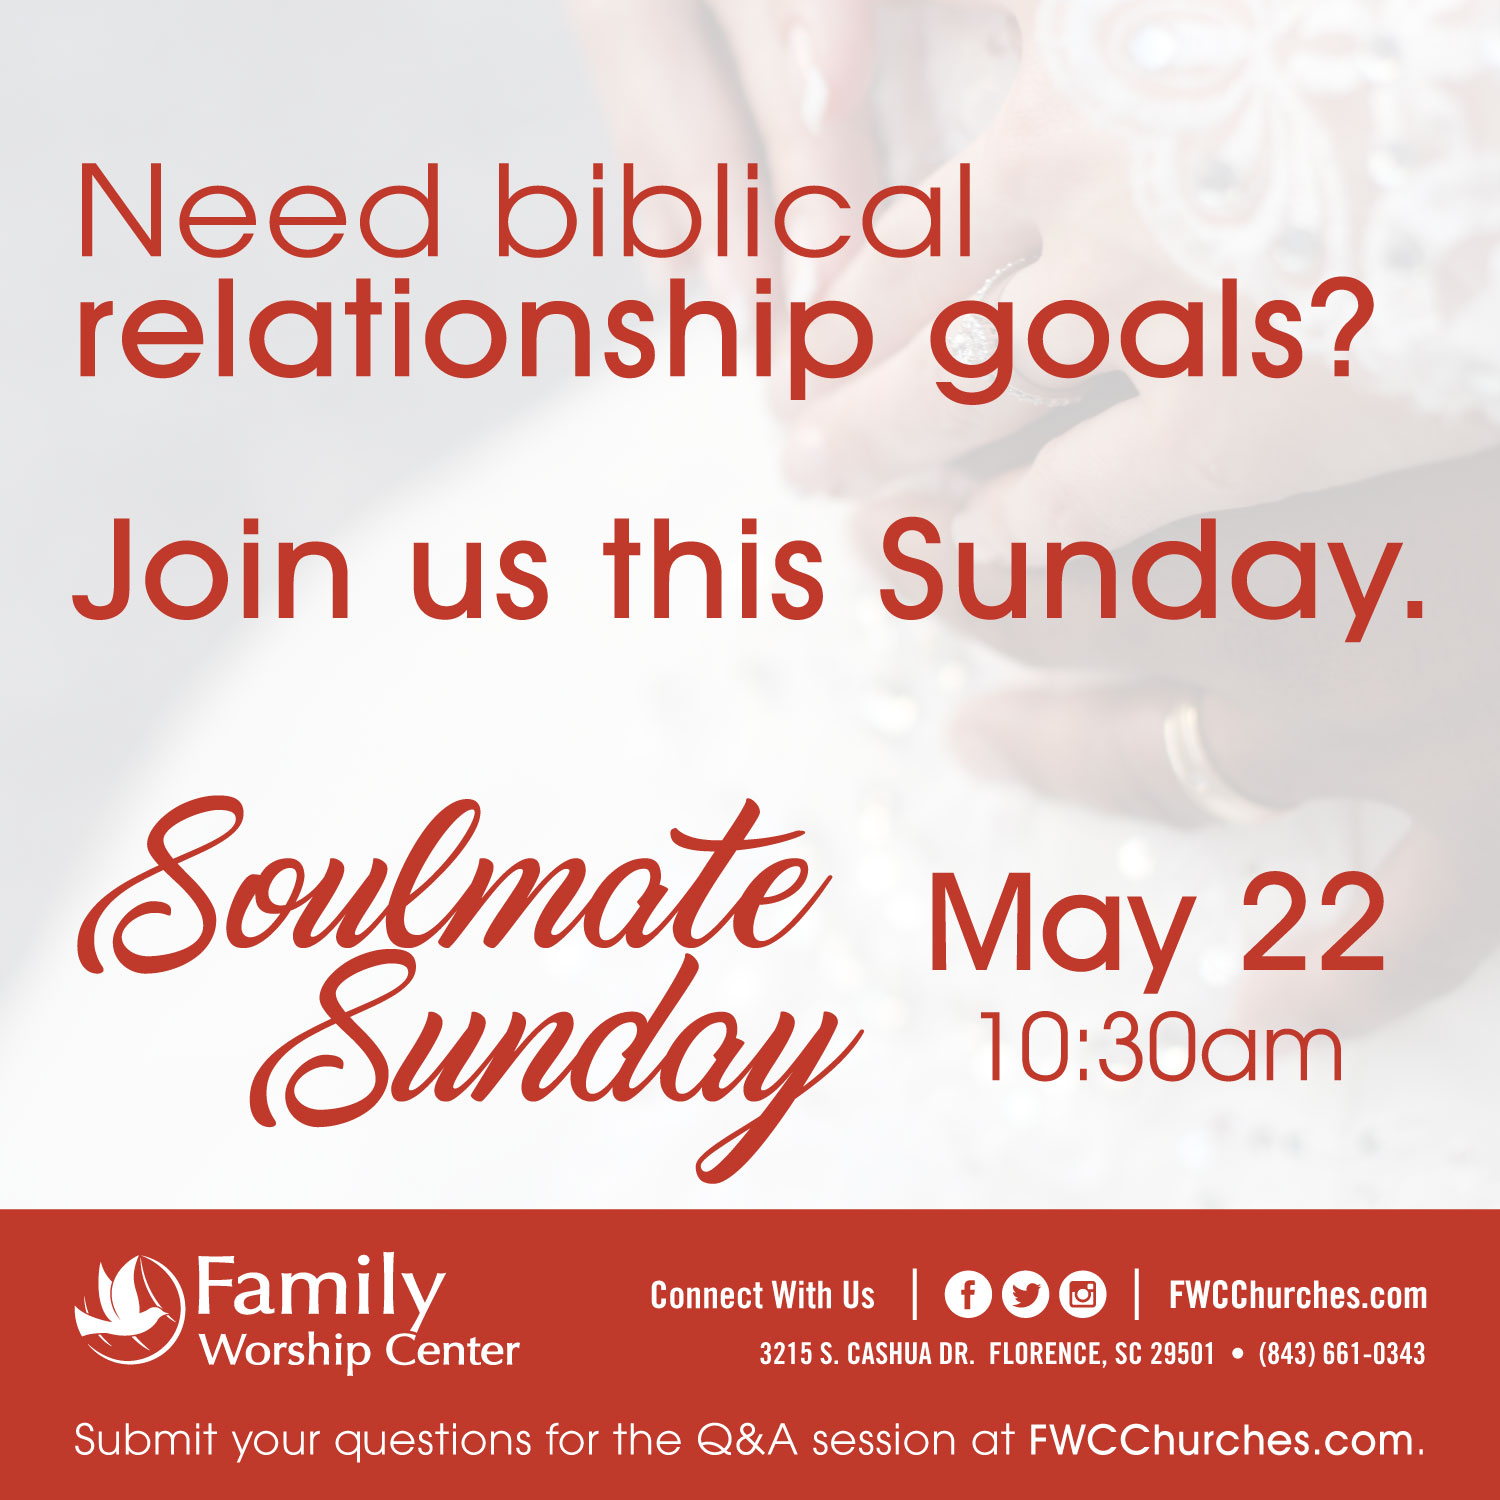 Soulmate Sunday 2016 - Social Square 1 - Family Worshpi Center Churches Florence